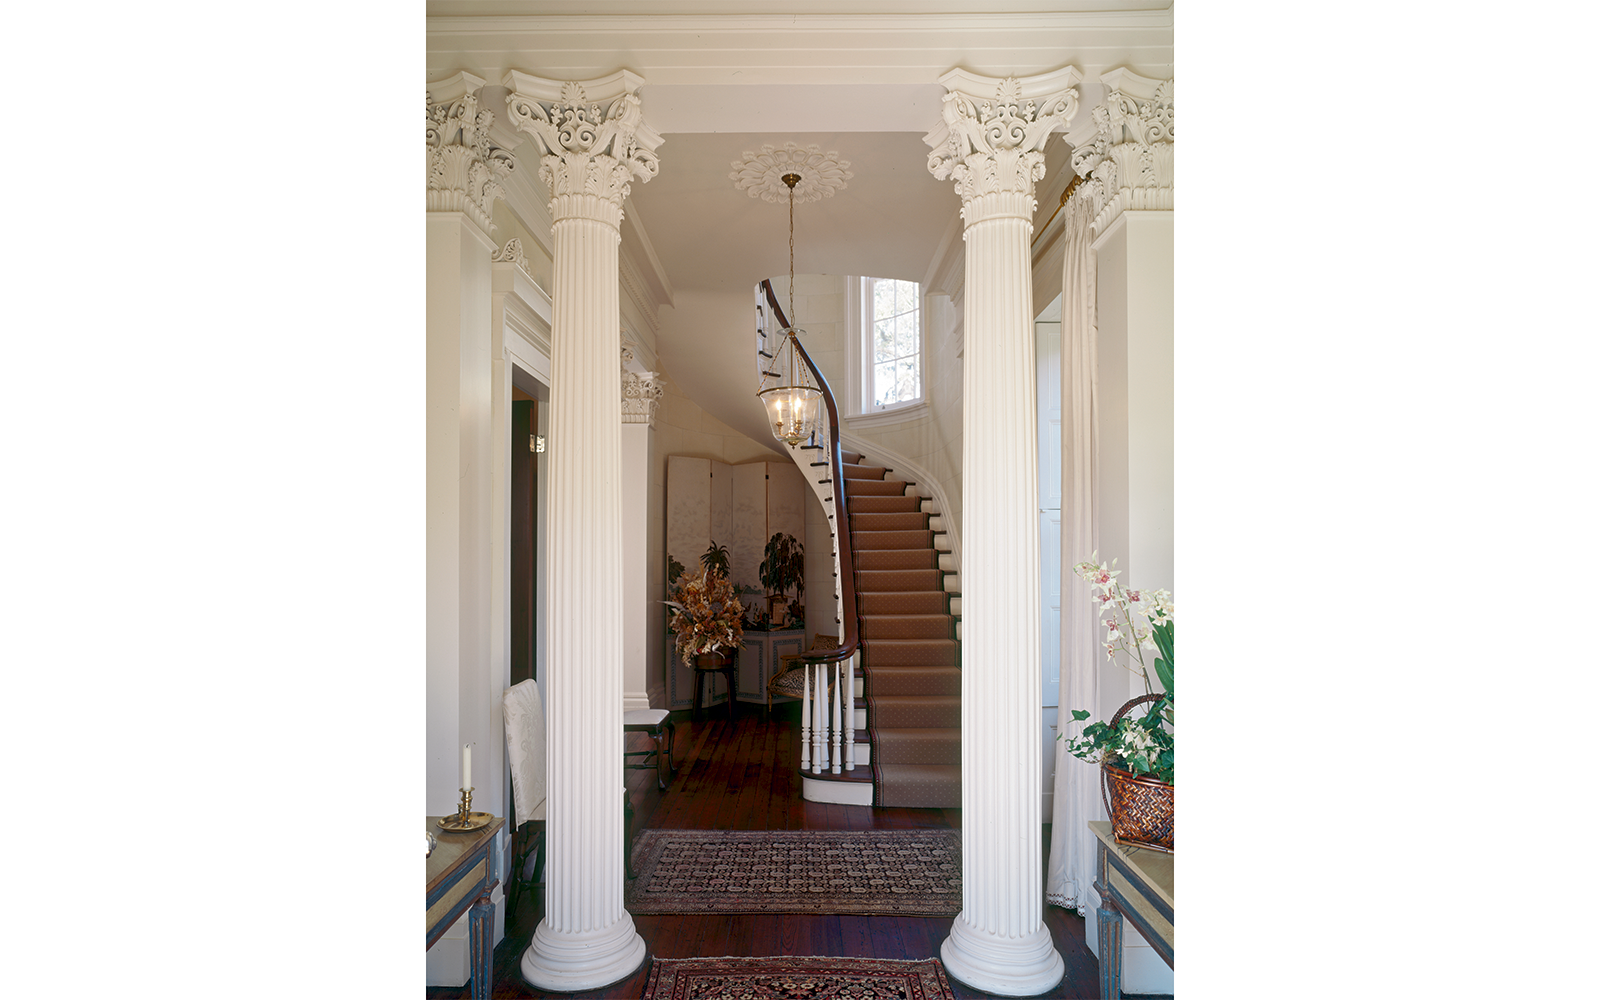 Entrance Hall of the Robert A. Grinnan House